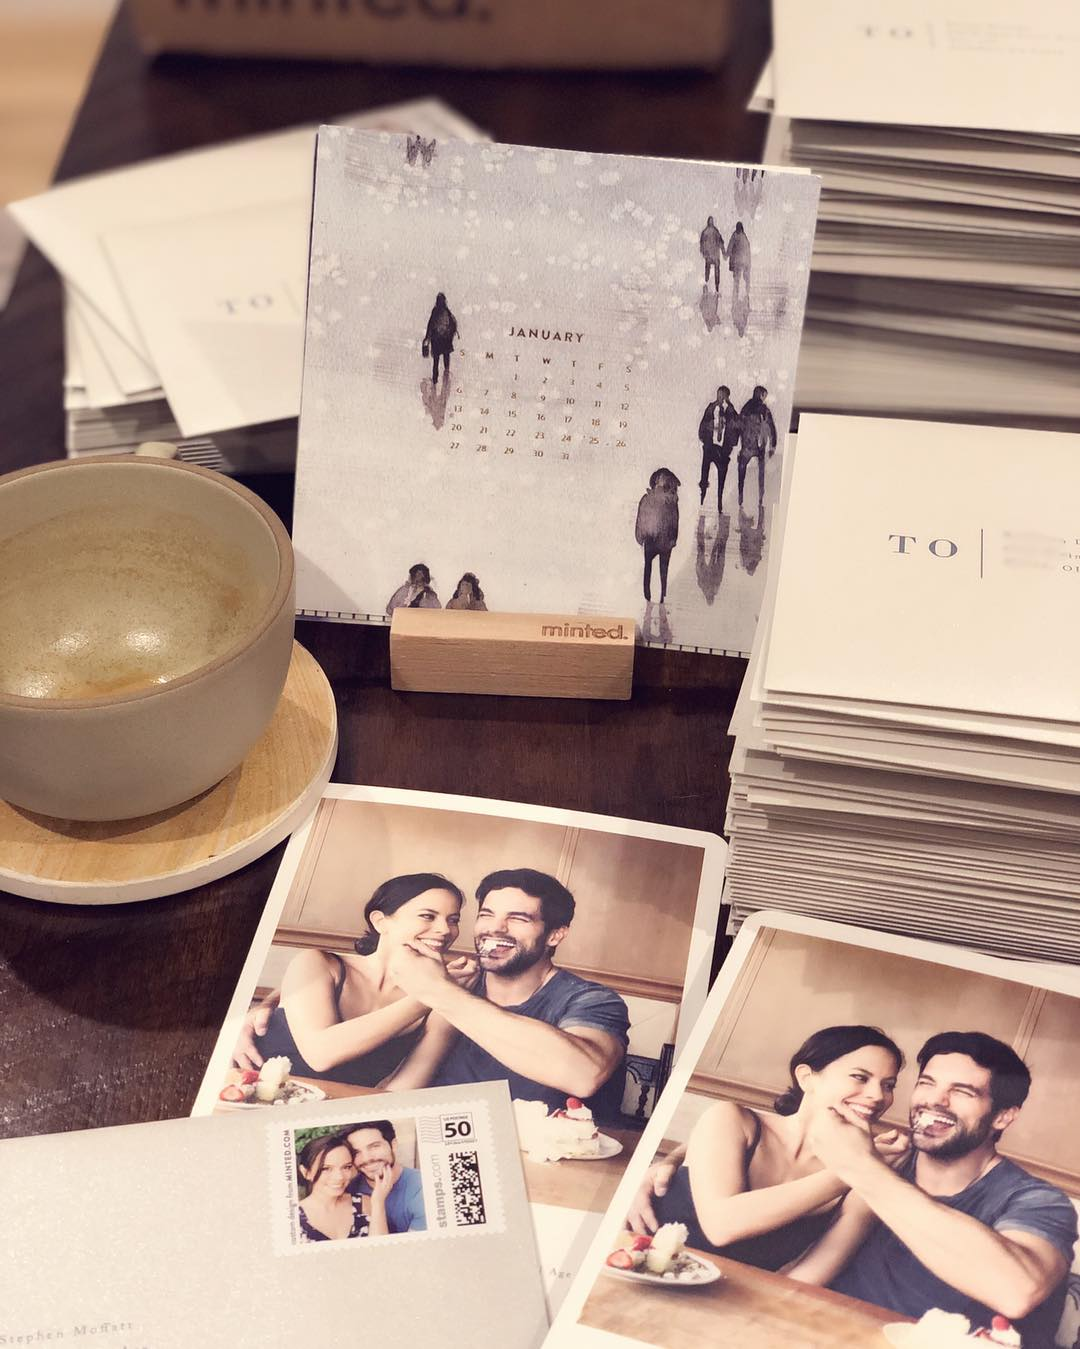 Overwhelmed that Kim & Brant Daugherty picked the tasting photo for their save the date. Such an adorable picture.